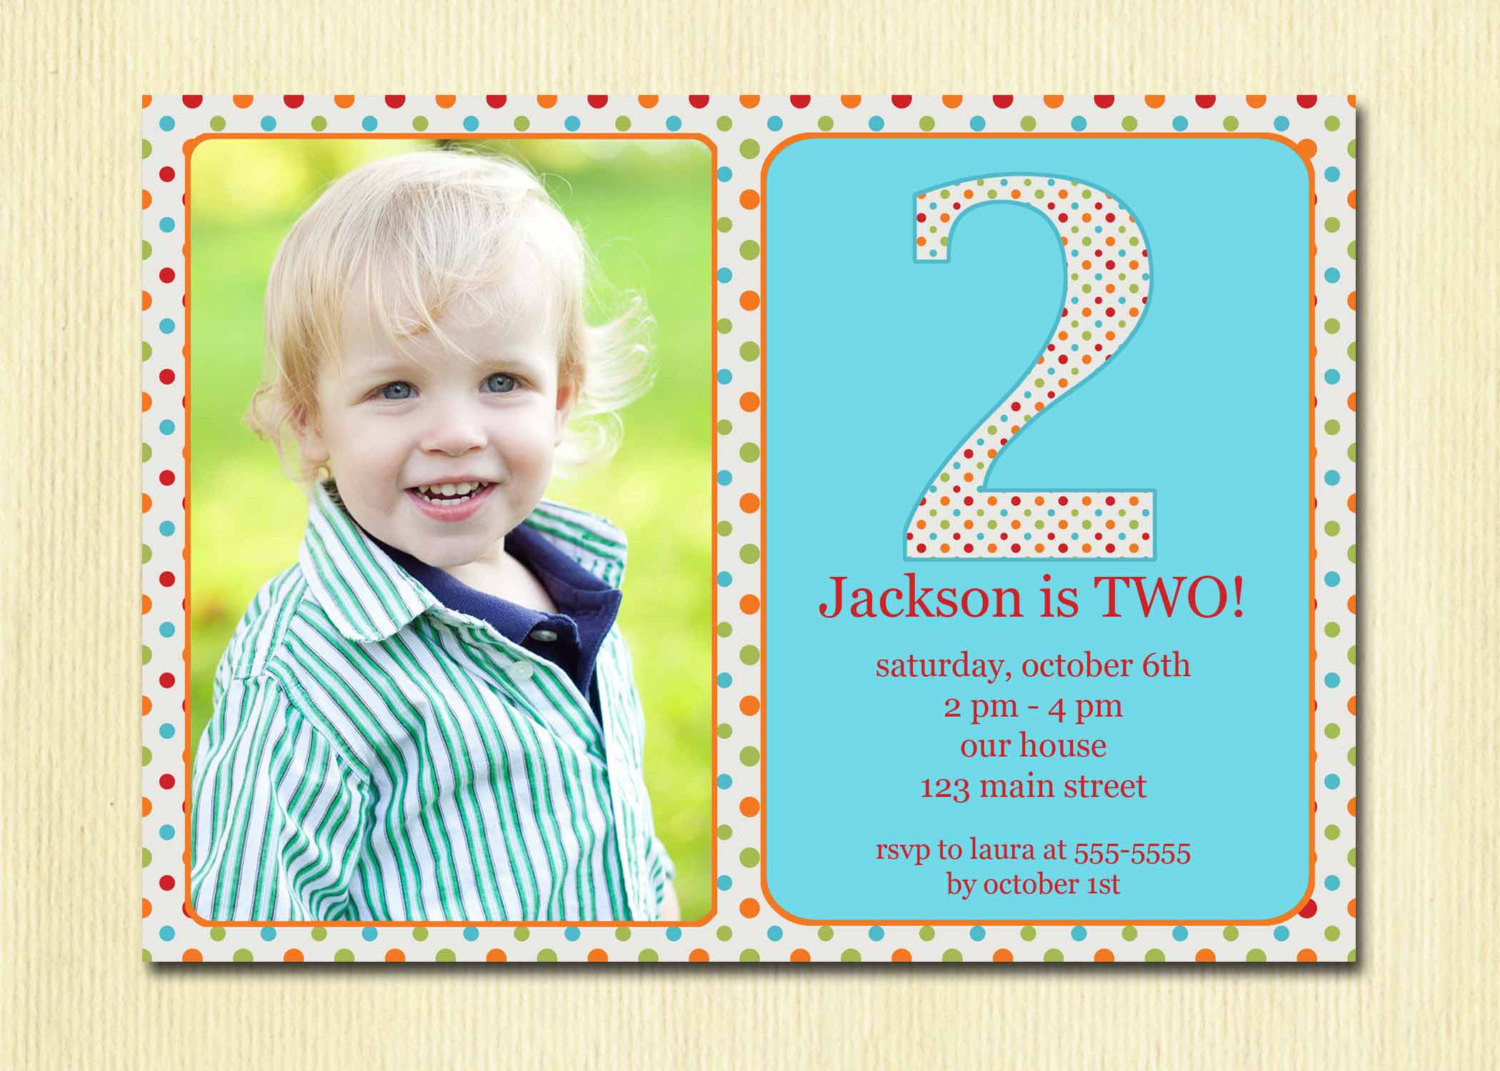 second birthday invitation wording ; 2nd-birthday-invitation-wording-inspirational-cute-birthday-sayings-for-a-2-year-old-modal-title-best-images-of-2nd-birthday-invitation-wording